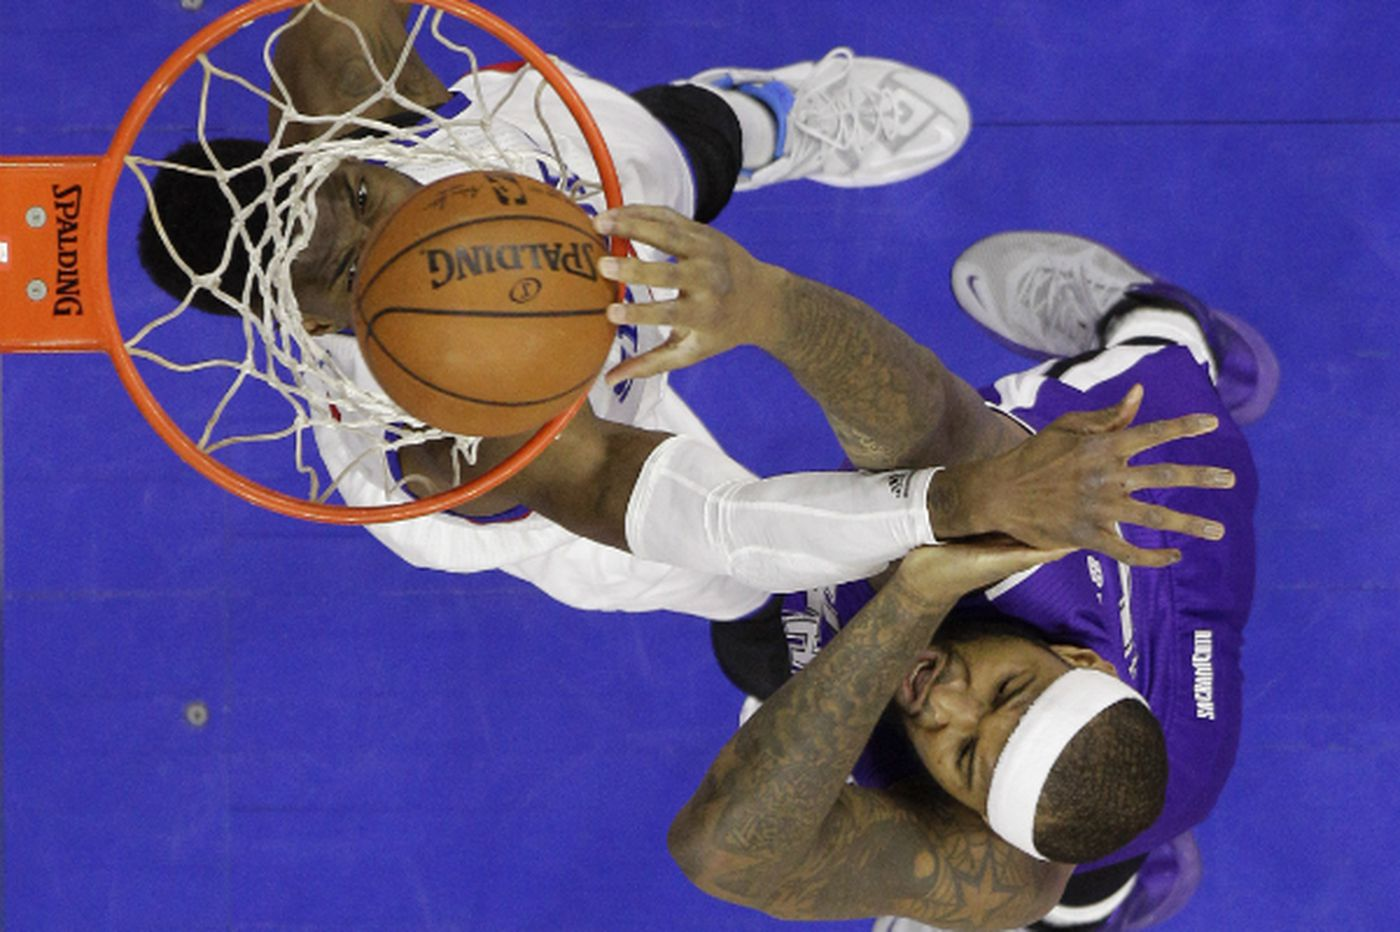 Sixers overcome poor first half to defeat Kings